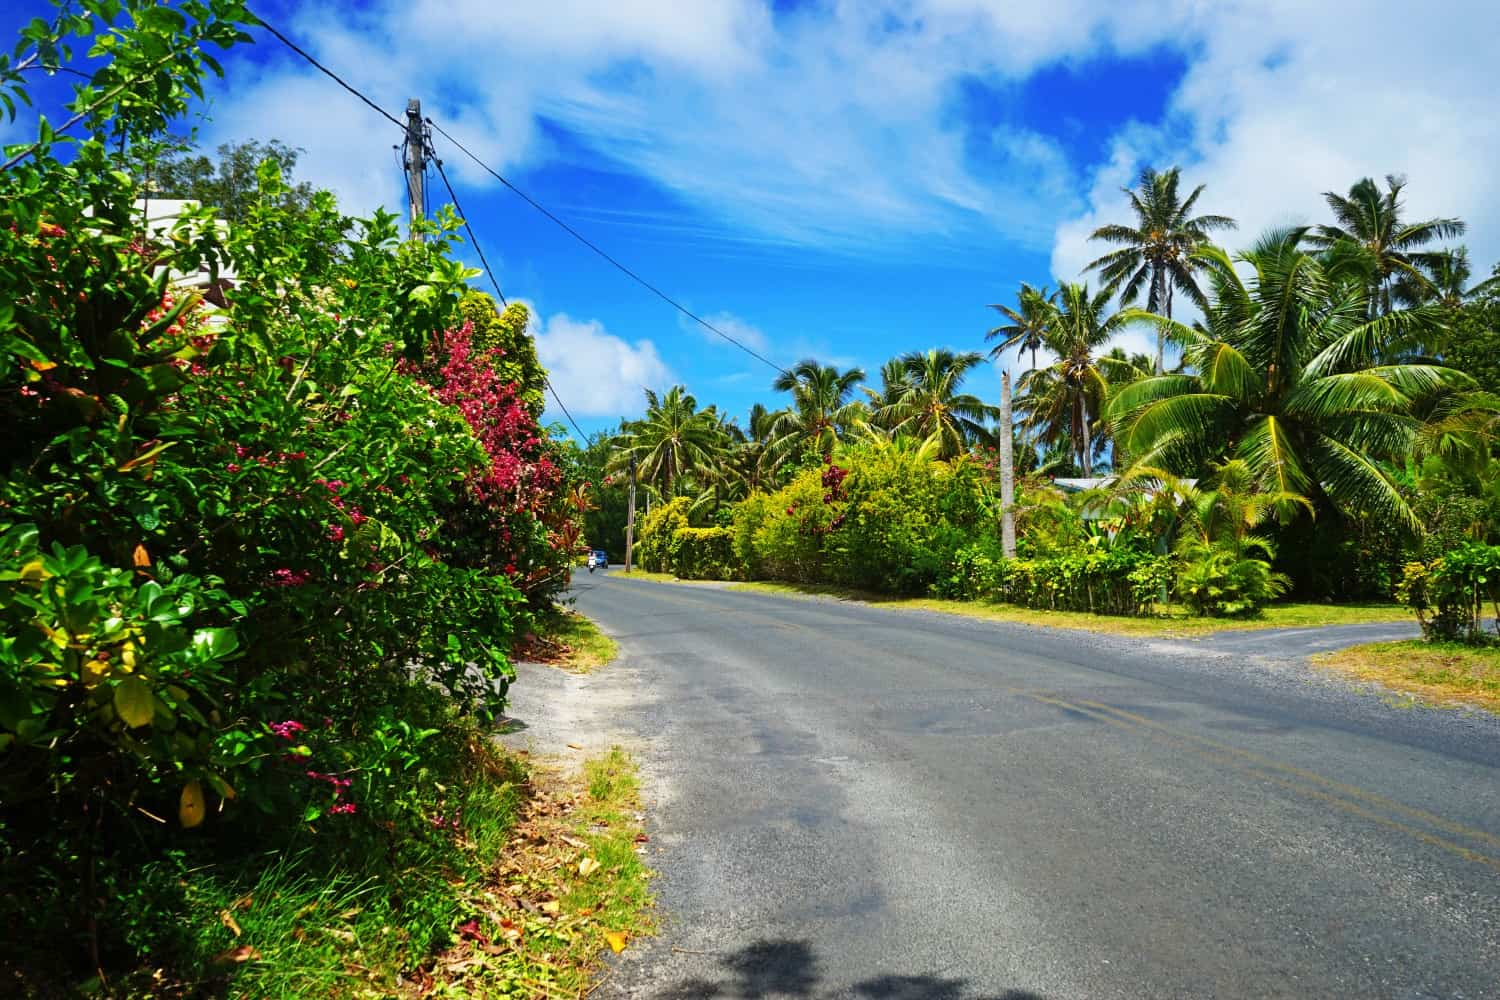 The main road in Rarotonga, the Cook Islands